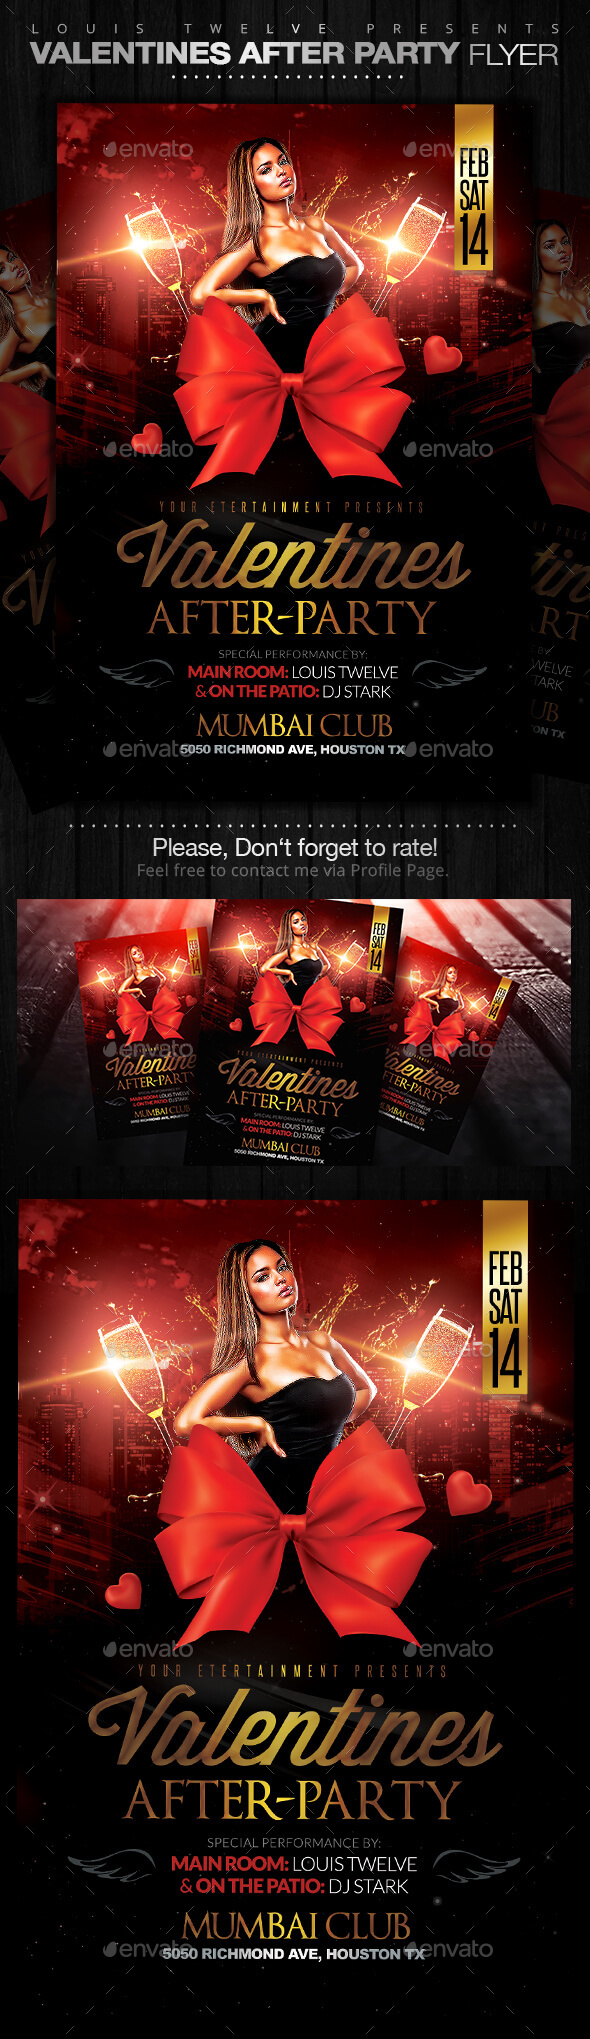 GraphicRiver Valentines After Party Flyer Template 10011160